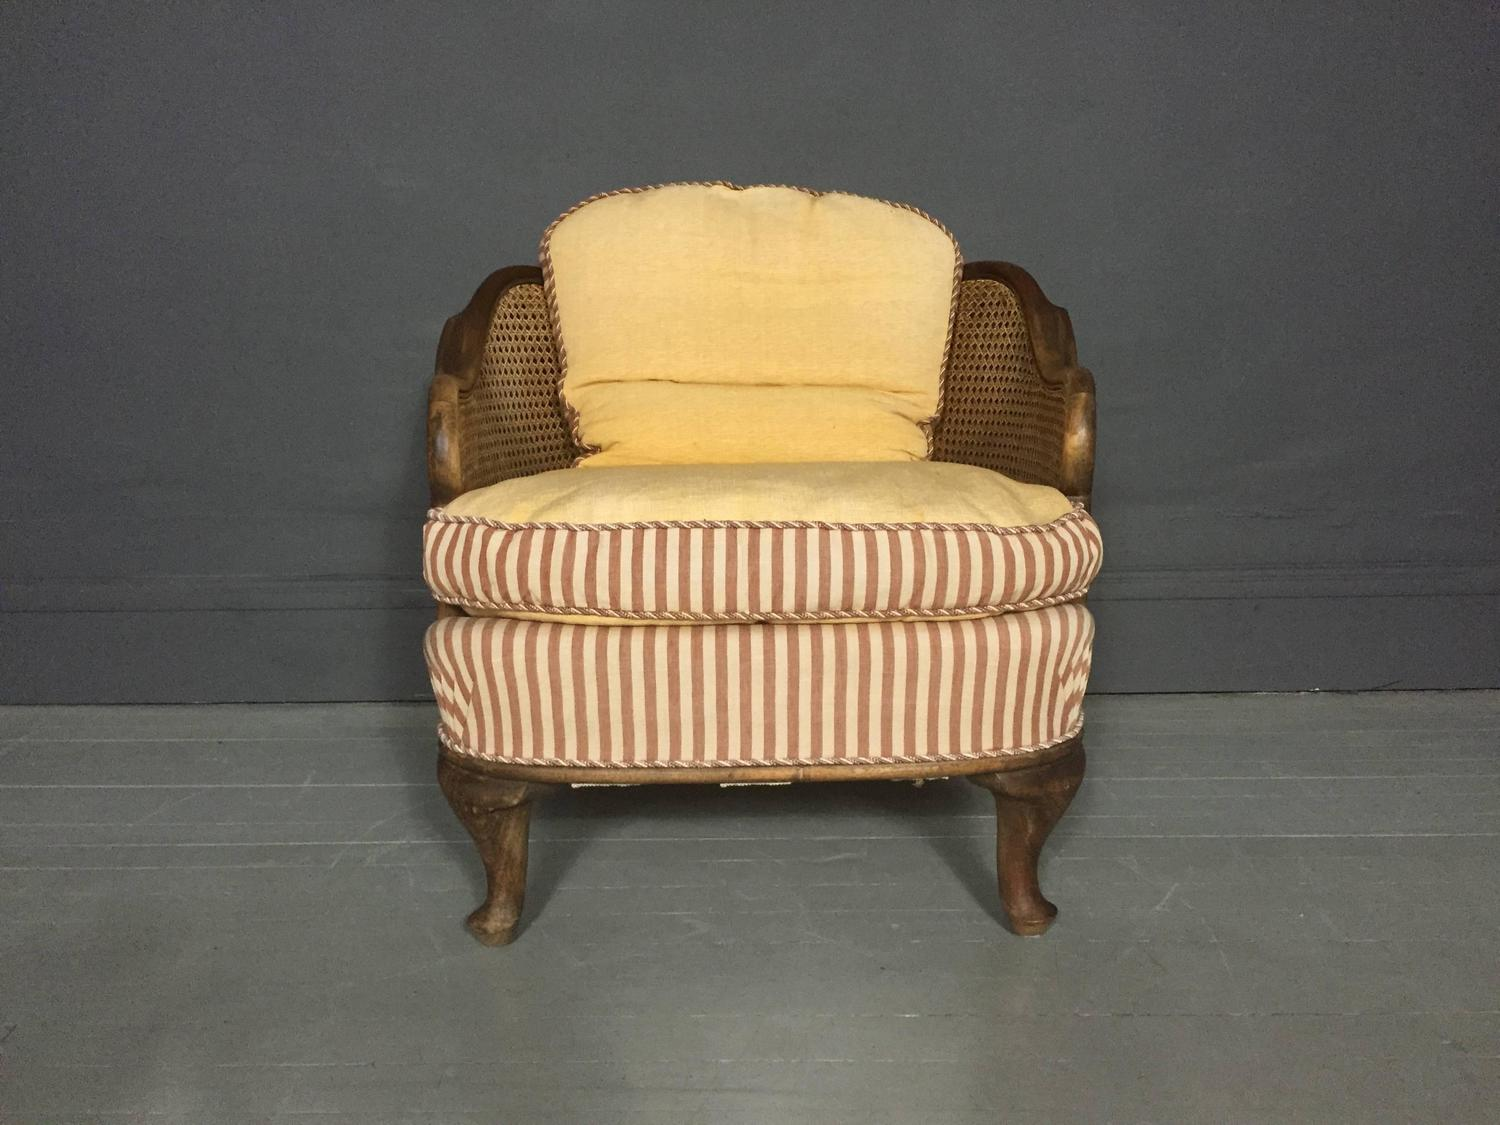 1930 cane back sofa slim double bed pair of bergere tub chairs walnut and sweden 1930s